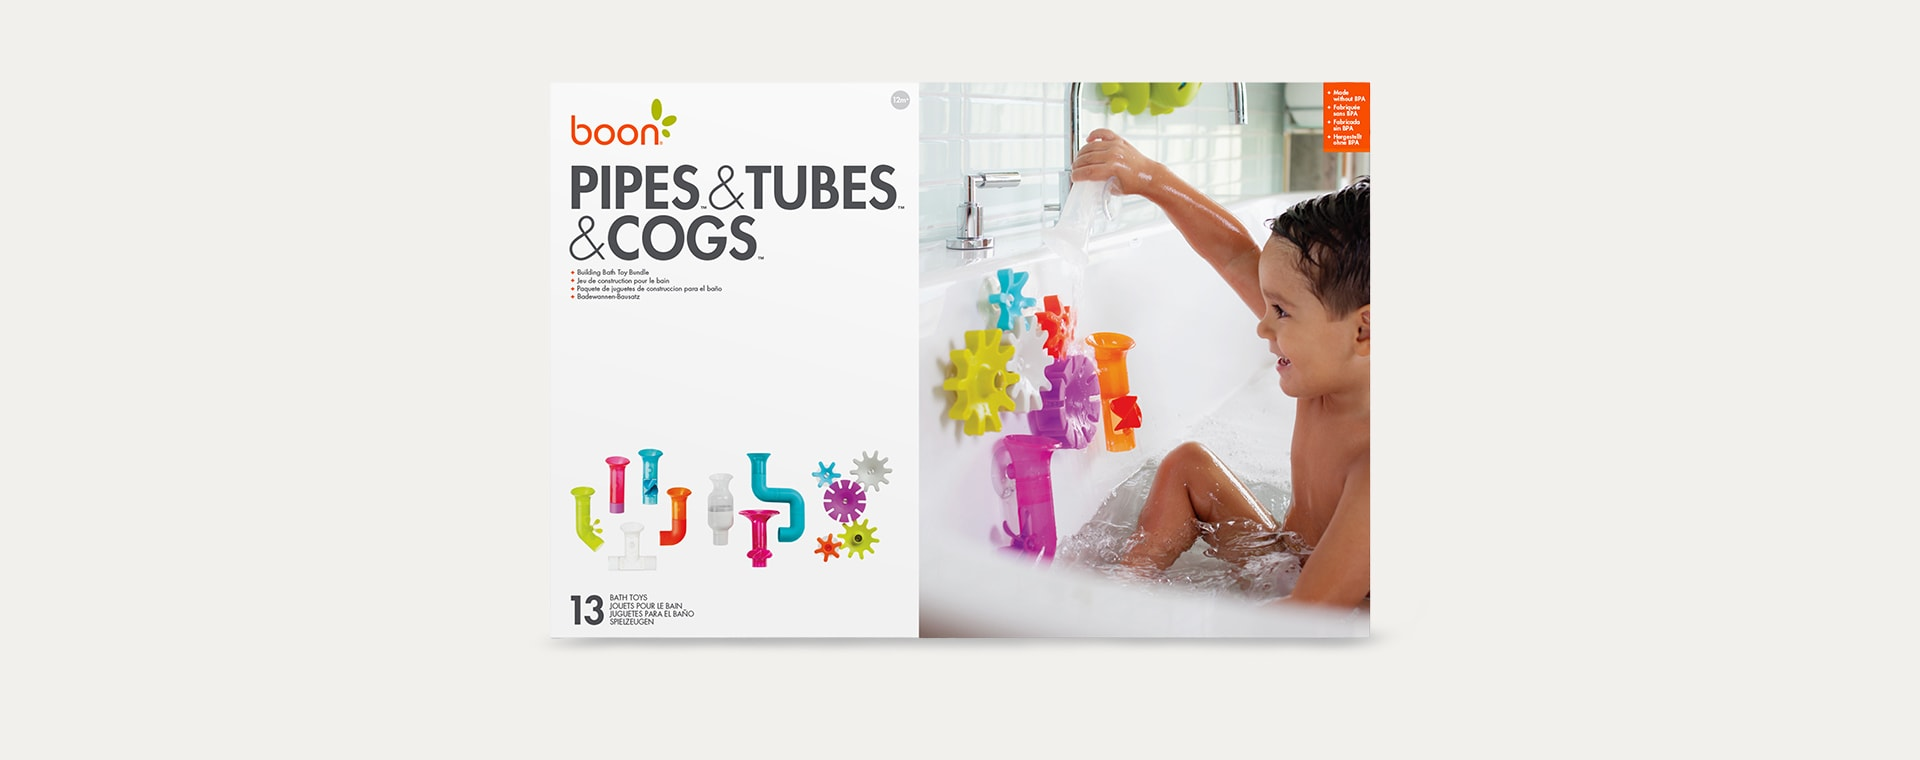 Multi Boon Pipes & Tubes & Cogs